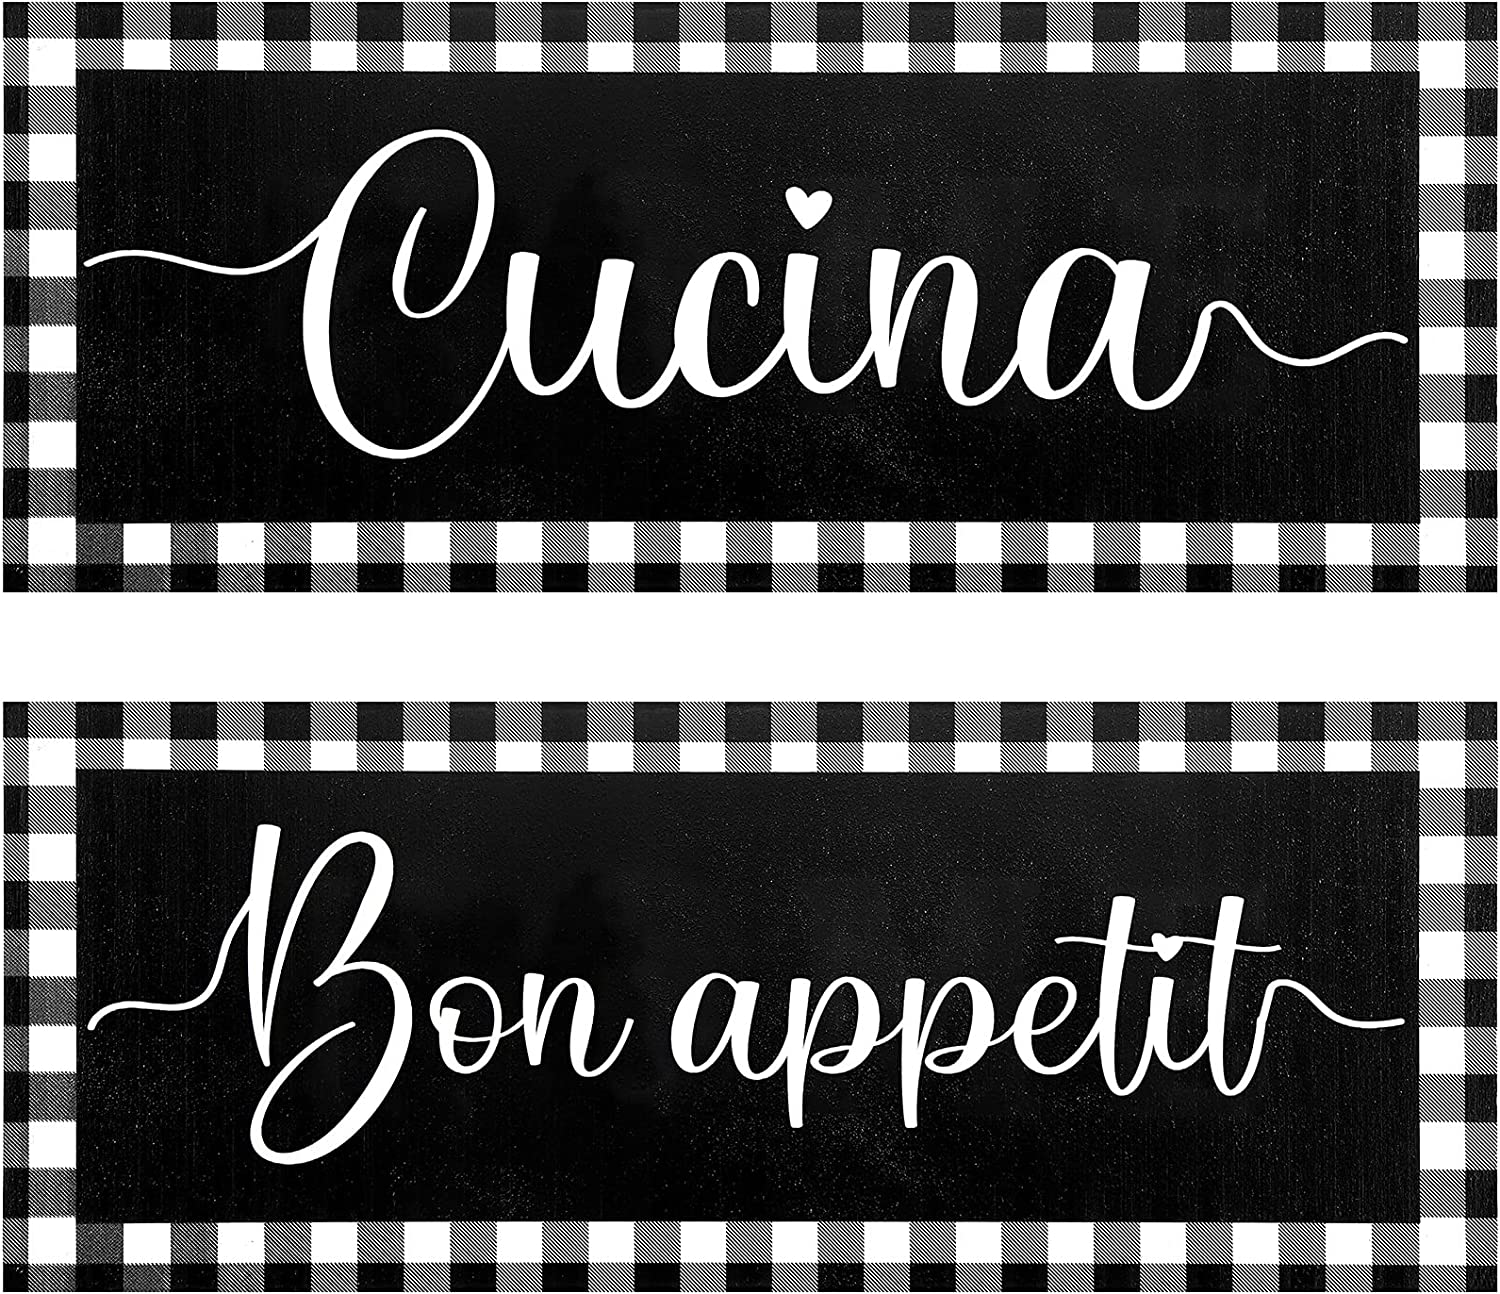 Jetec 2 Pieces Rustic Kitchen Wall Sign Buffalo Grid Farmhouse Wall Bon Appetit Cucina Art Kitchen Sign Home Decorations for Kitchen Dining Living Room Bar Cafe Decoration